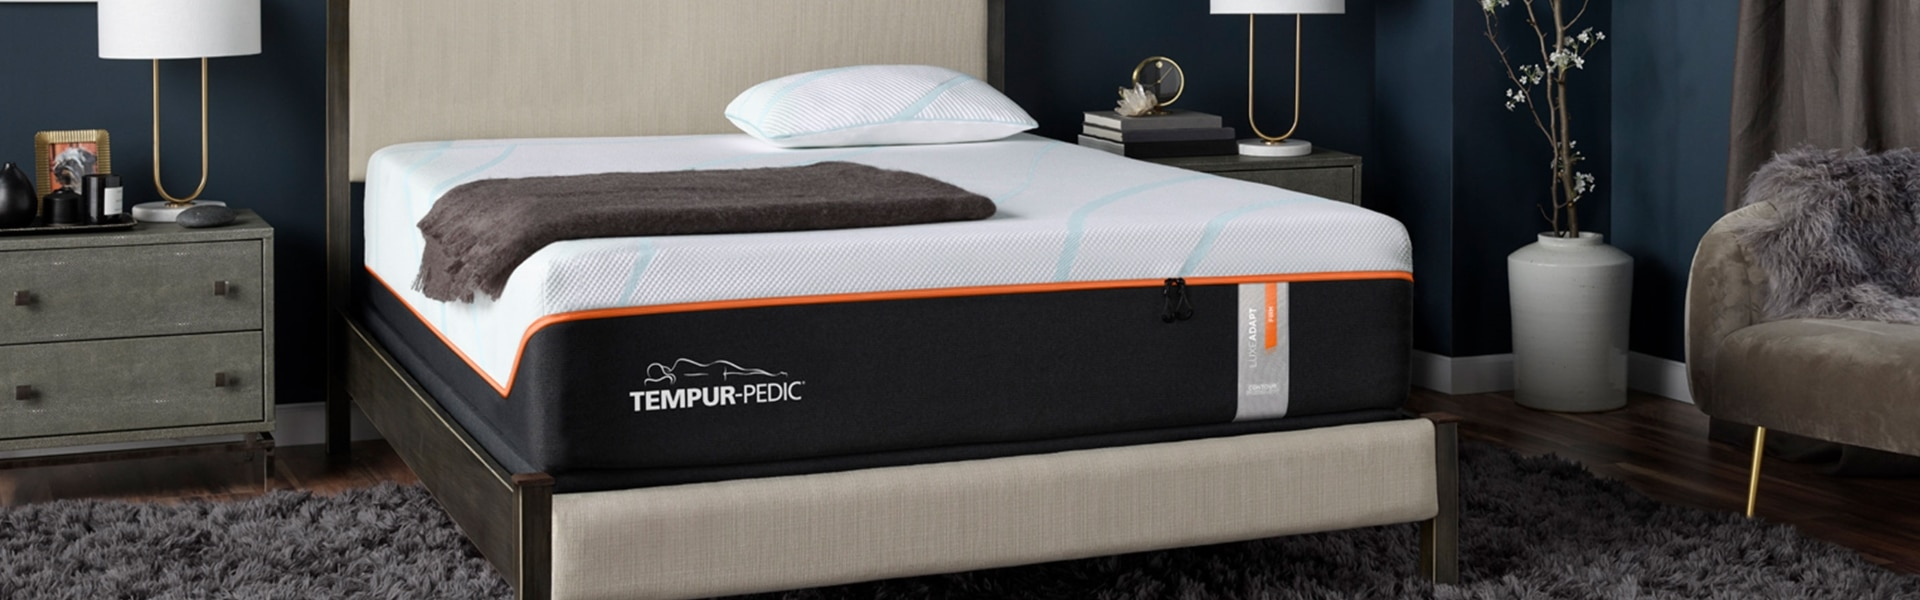 Best Tempur-Pedic Mattresses Reviewed in Detail